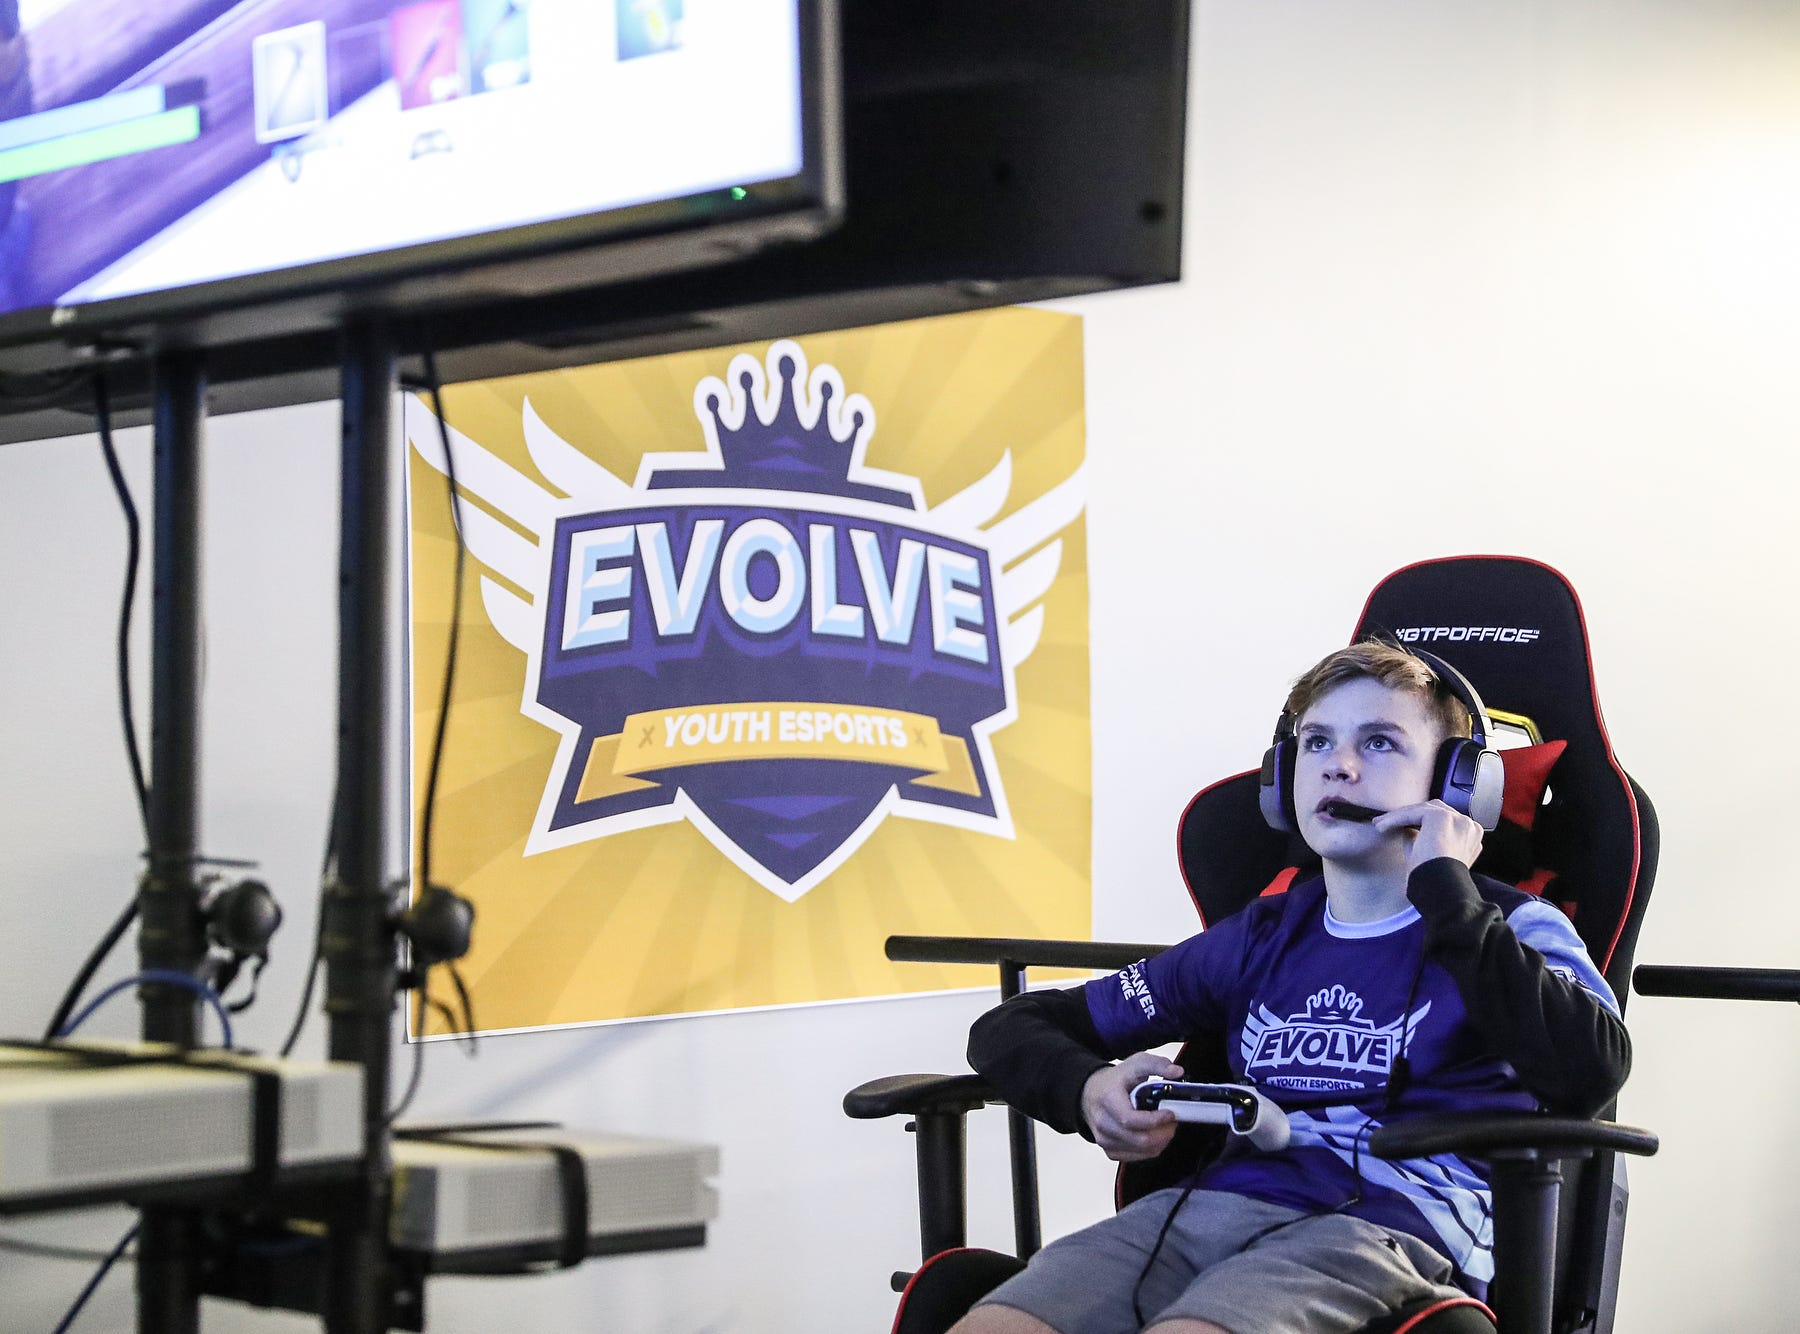 Brandon Woodard, 14, communicates through a headset during an Evolve Youth Sports practice at the Player One arena in Carmel, Ind., Thursday, Jan. 24, 2019. Scott Wise, original founder of Scotty's Brewhouse, has partnered with Player One Esports for his next venture, a video game sports league that has attracted around 200 kids so far.